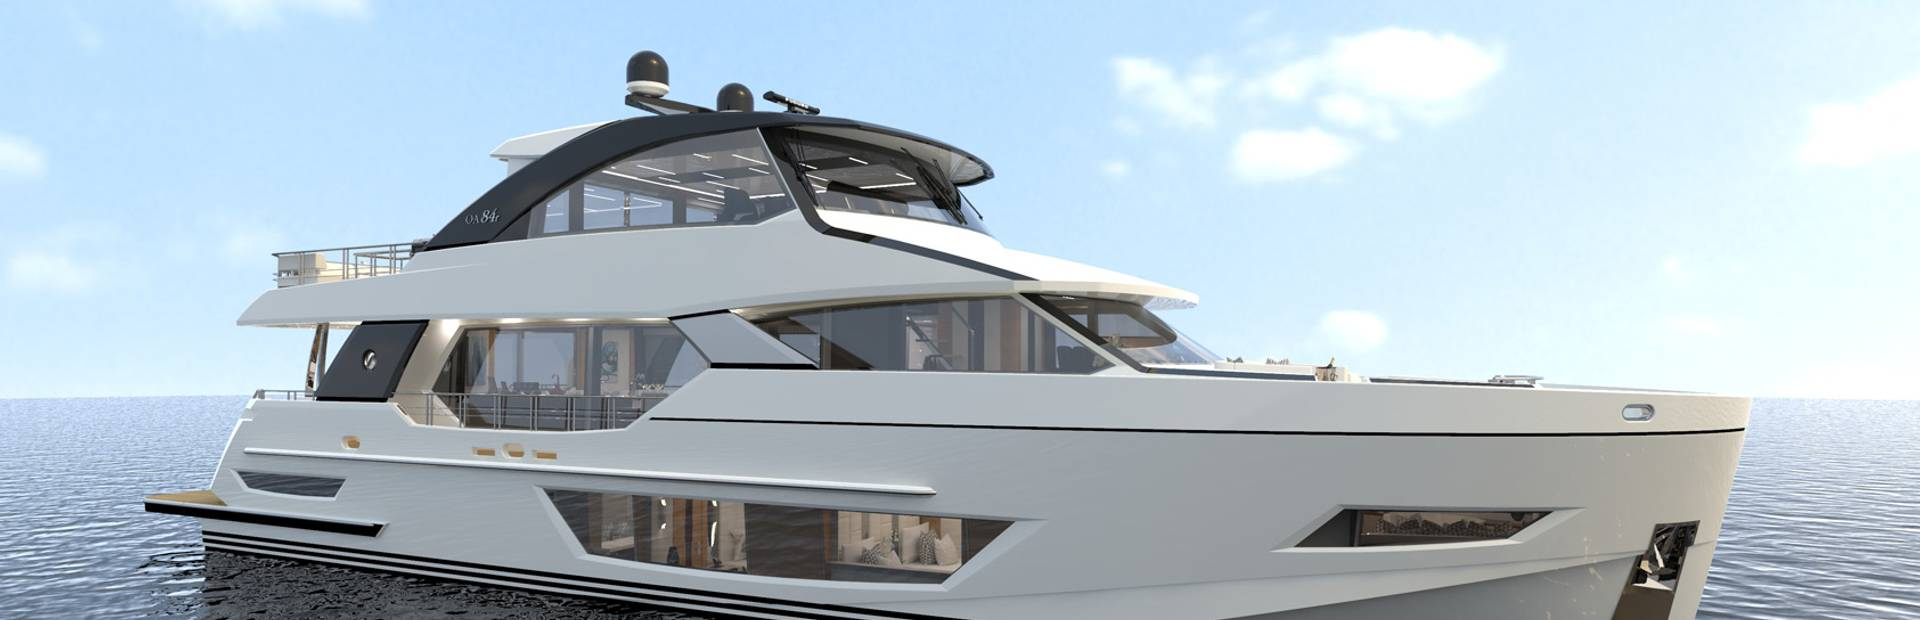 84R Enclosed Yacht Charter